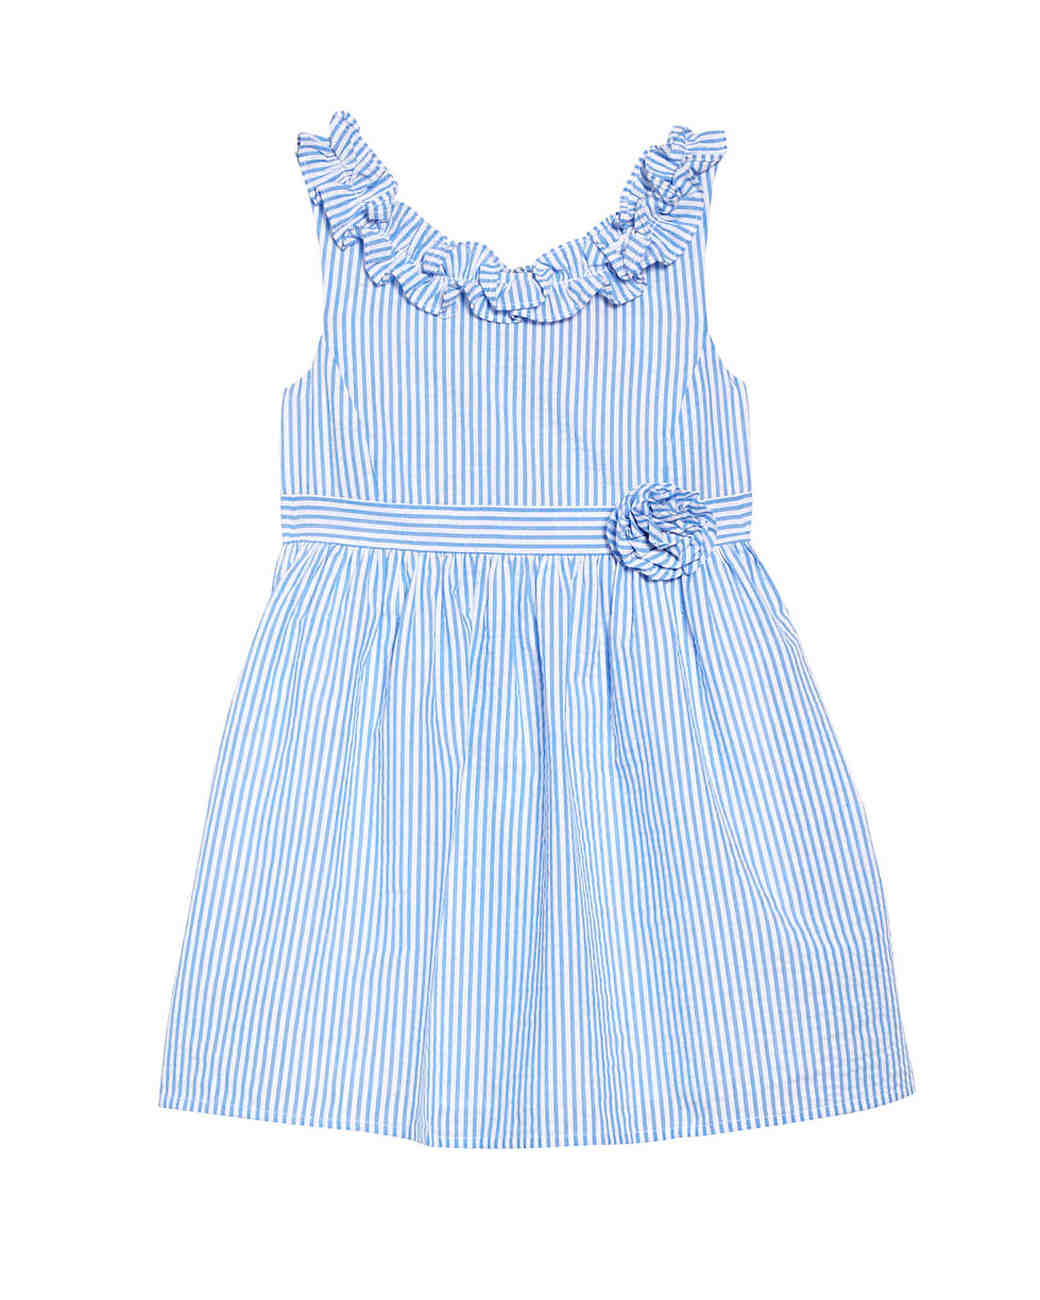 summer flower girl outfit blue striped dress